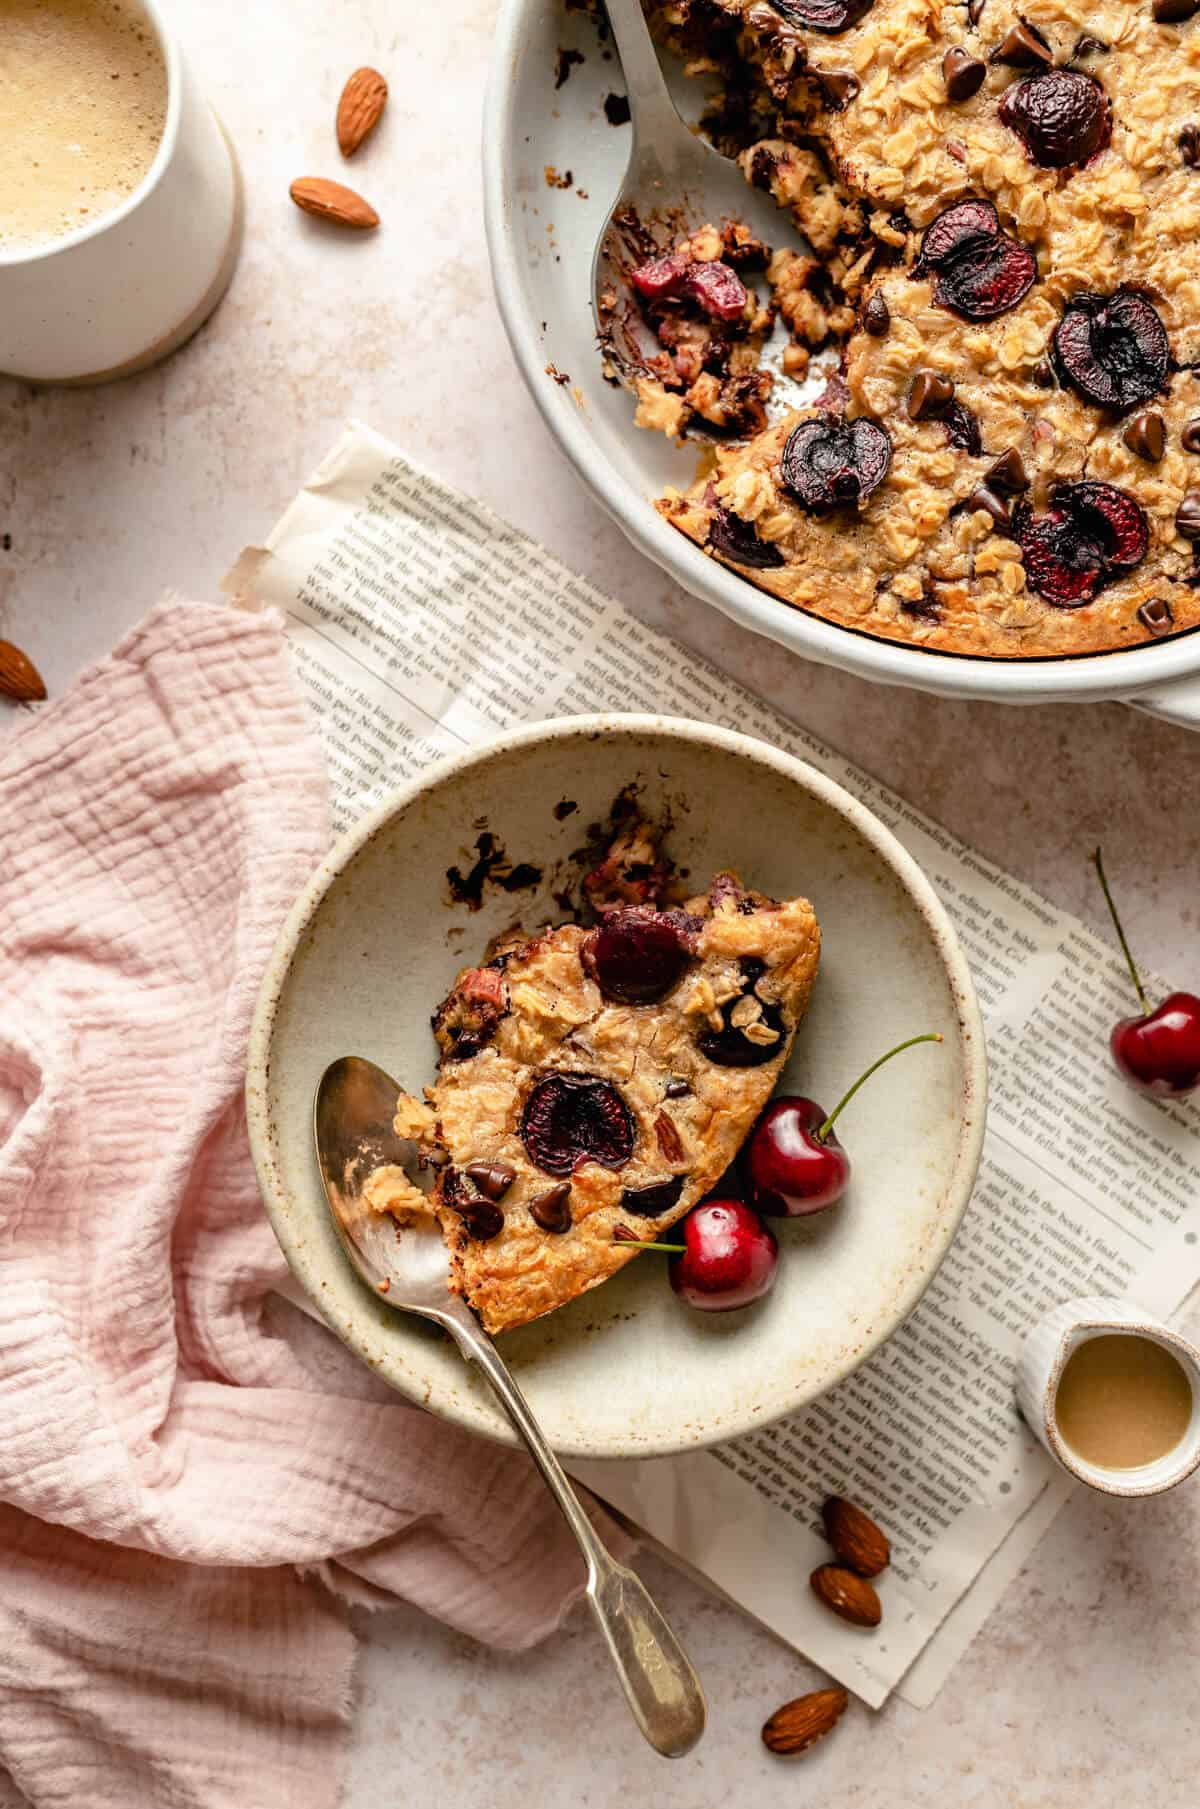 A serving of tahini cherry chocolate chip baked oatmeal in a bowl with a newspaper, cherries and a spoon